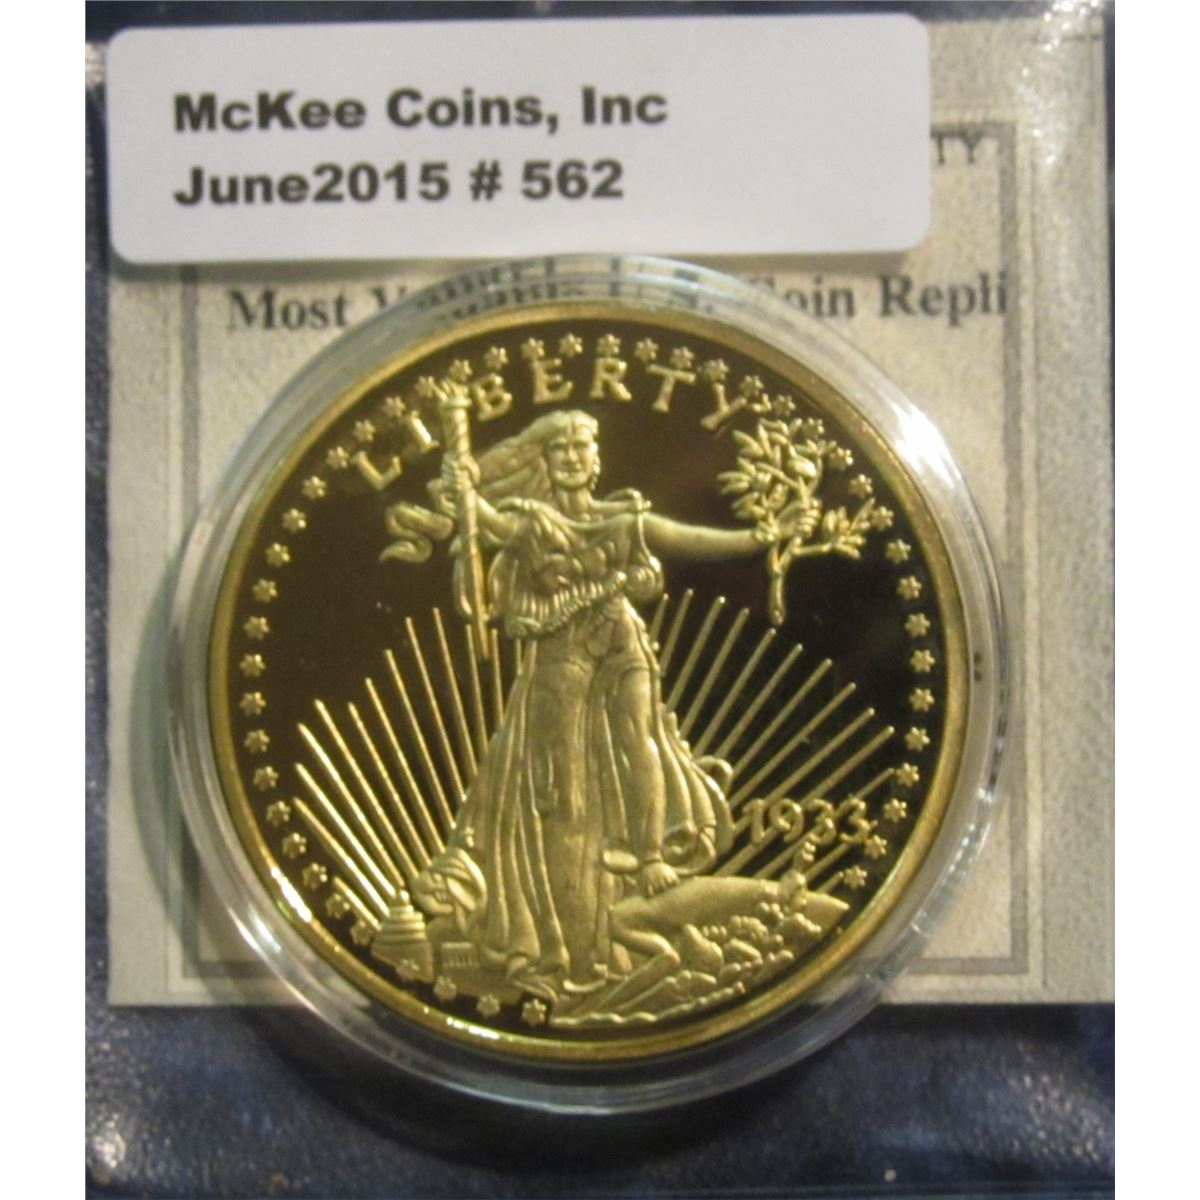 562  1933 U S  $20 St  Gaudens most valuable U S  Coin replica by the  American Mint  No  A 04718  En